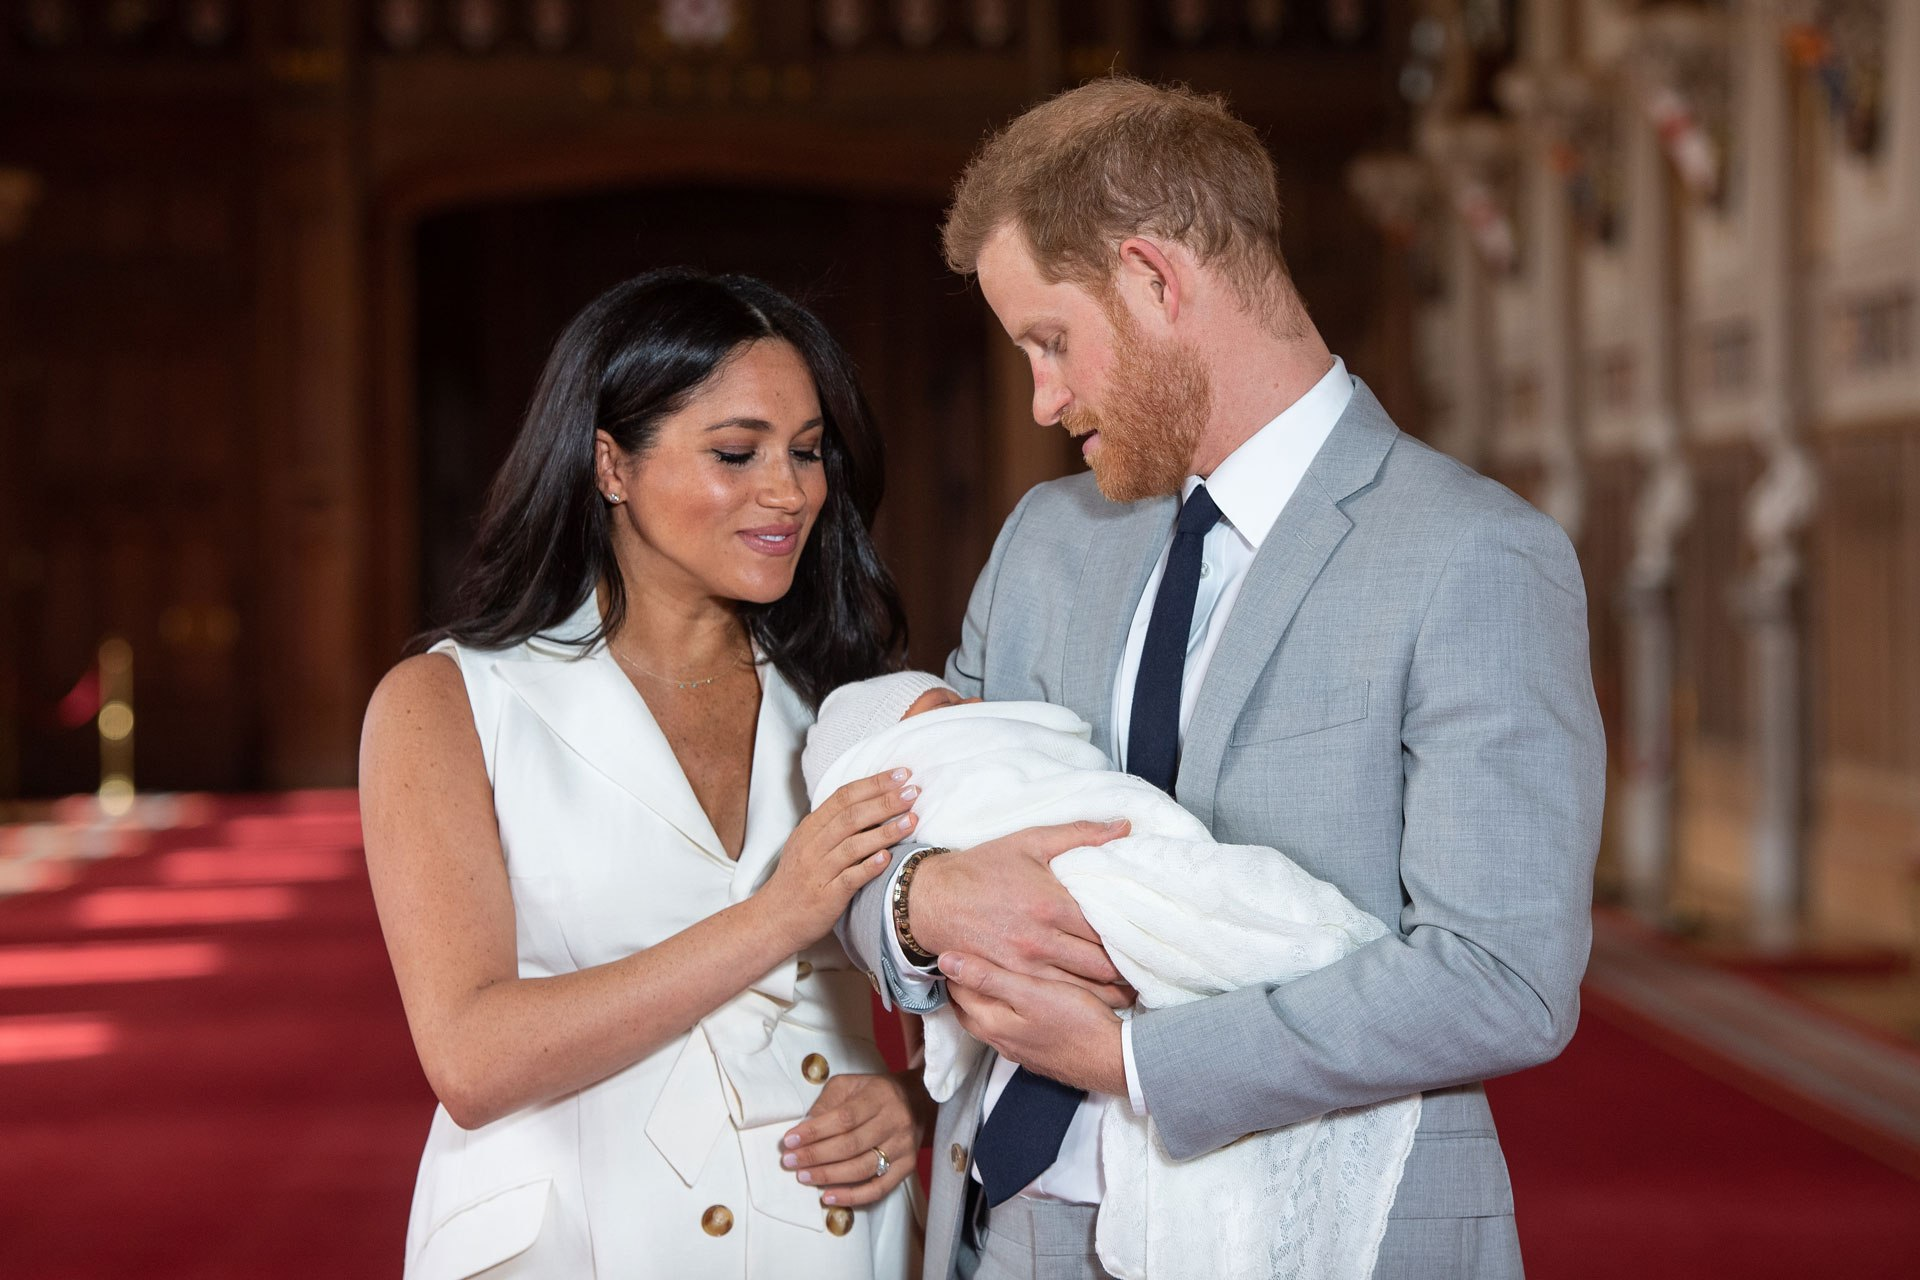 Archie's christening date has been announced, however, The Queen won't be attending